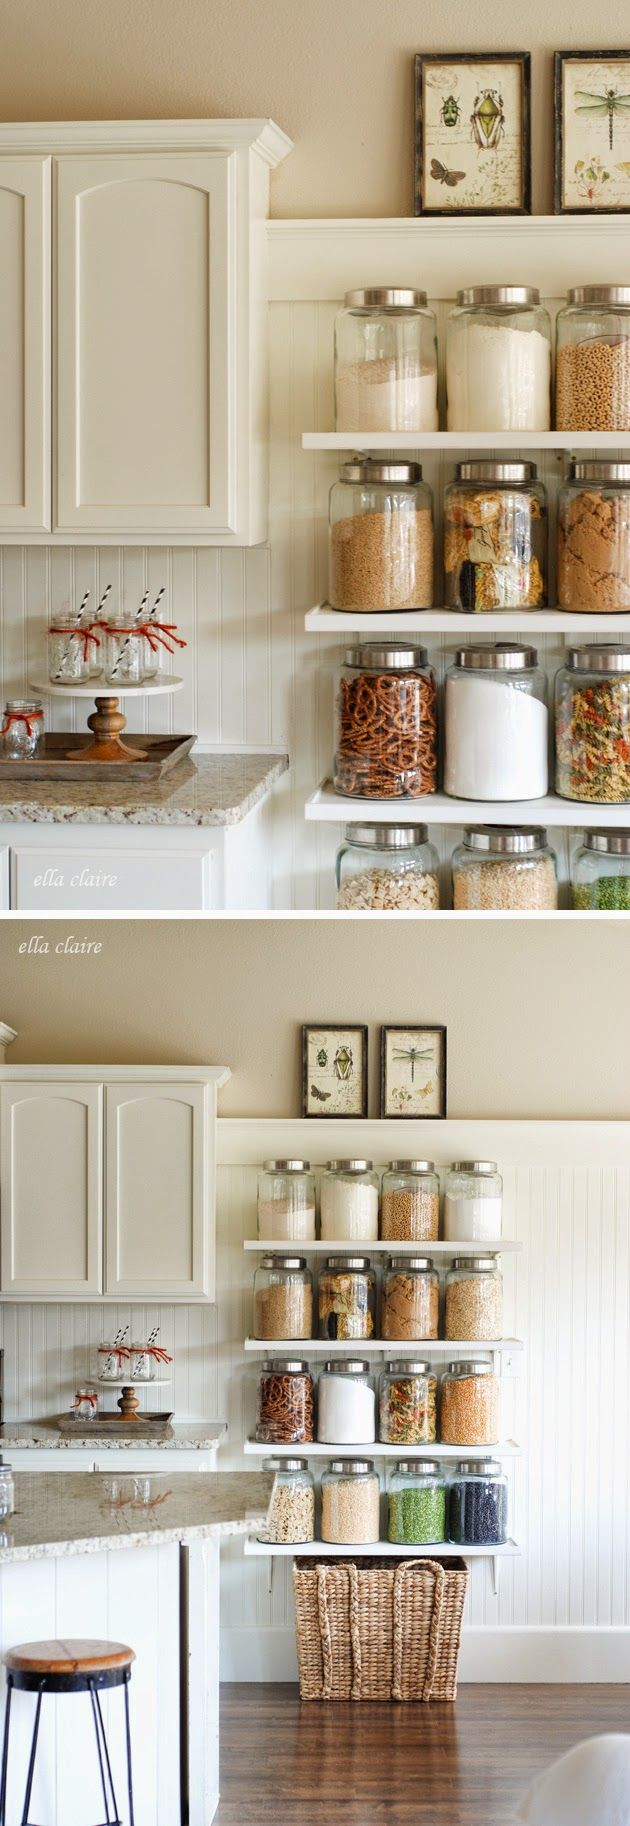 285 best DIY Kitchen Decor images on Pinterest | Decorating tips ...